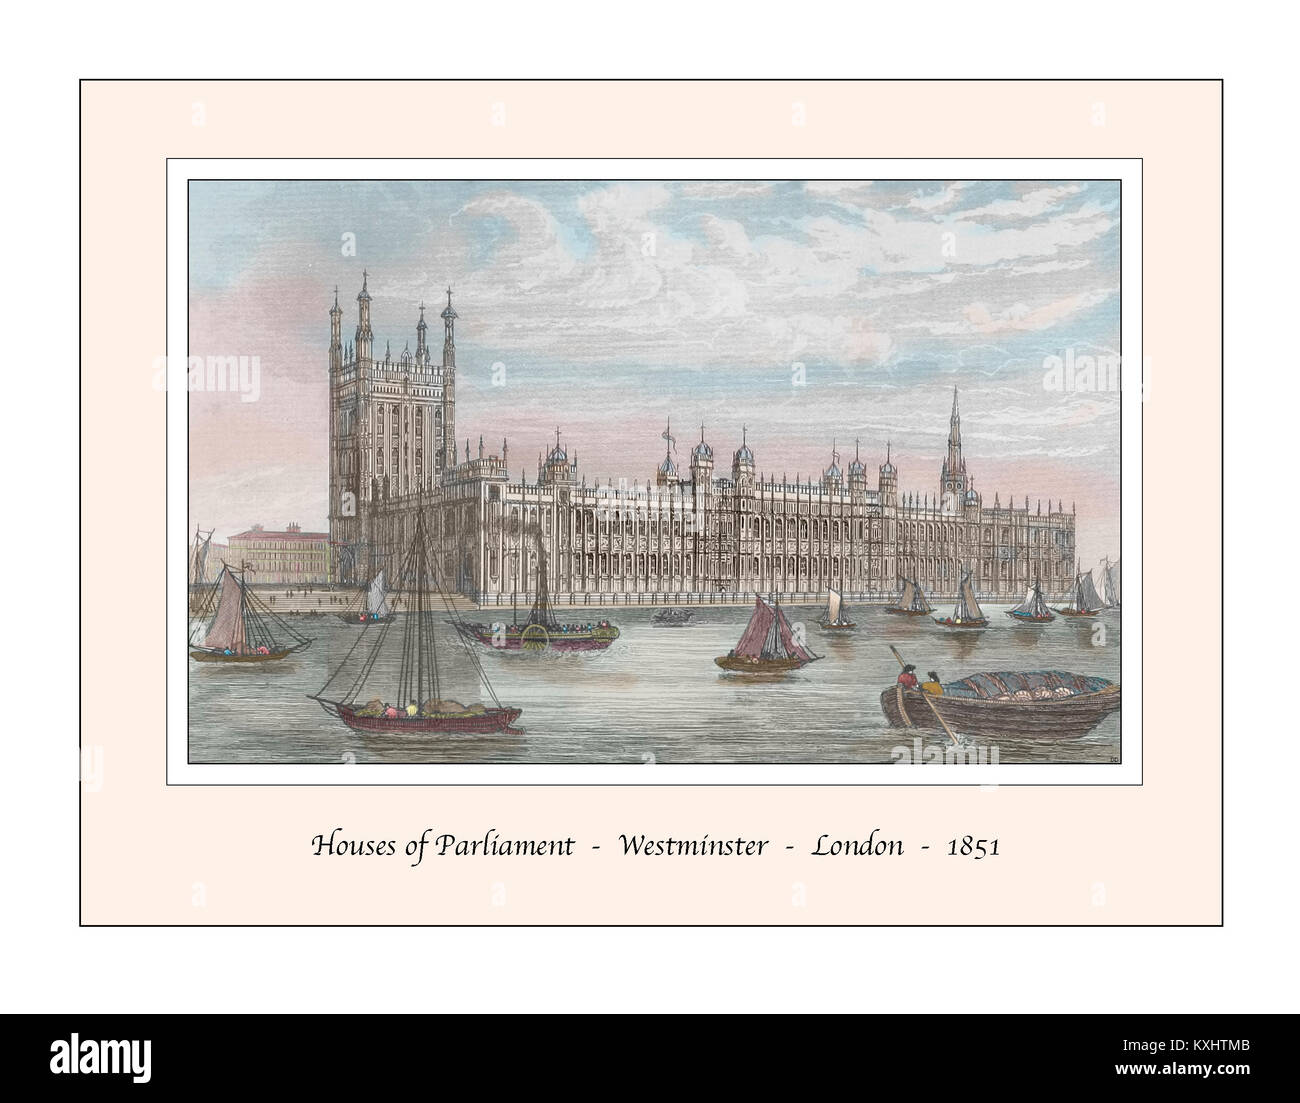 Houses of Parliament Westminster London Original Design based on a 19th century Engraving - Stock Image